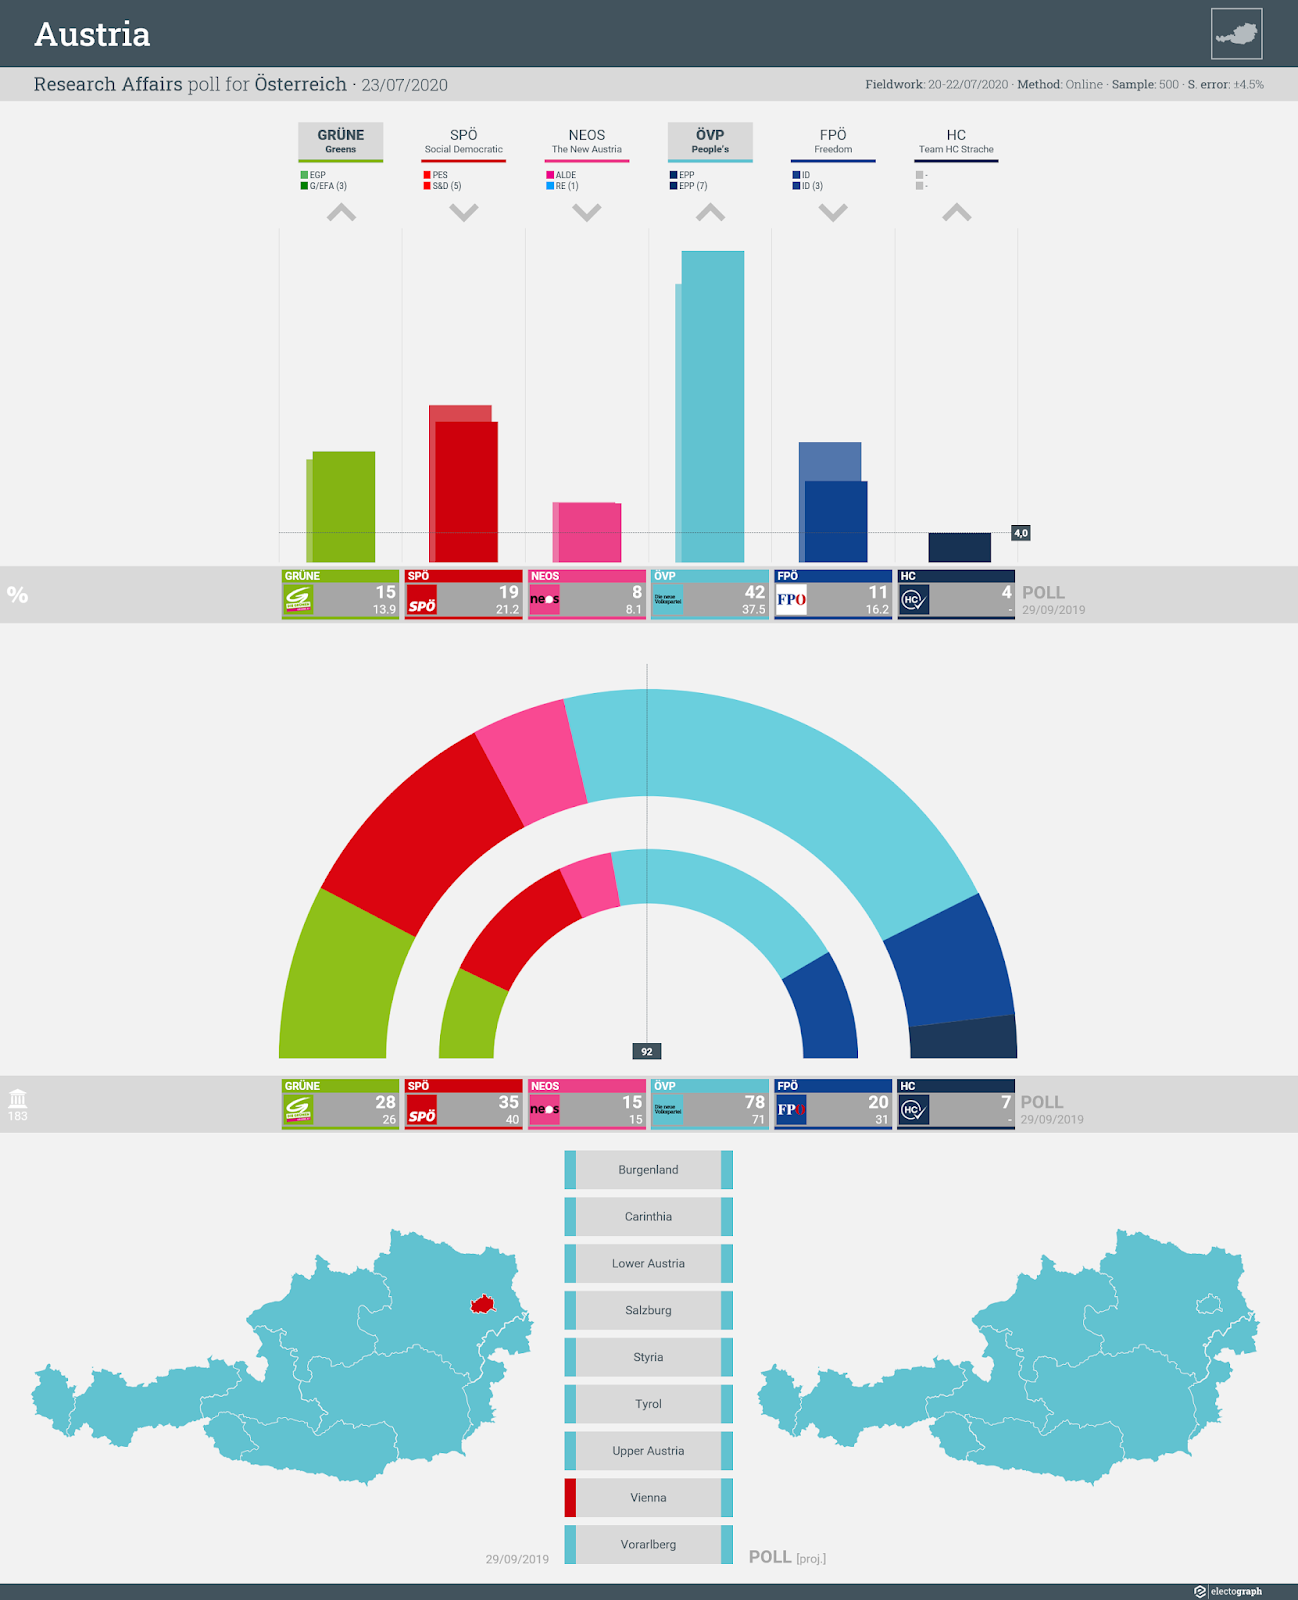 AUSTRIA: Research Affairs poll chart for Österreich, 23 July 2020